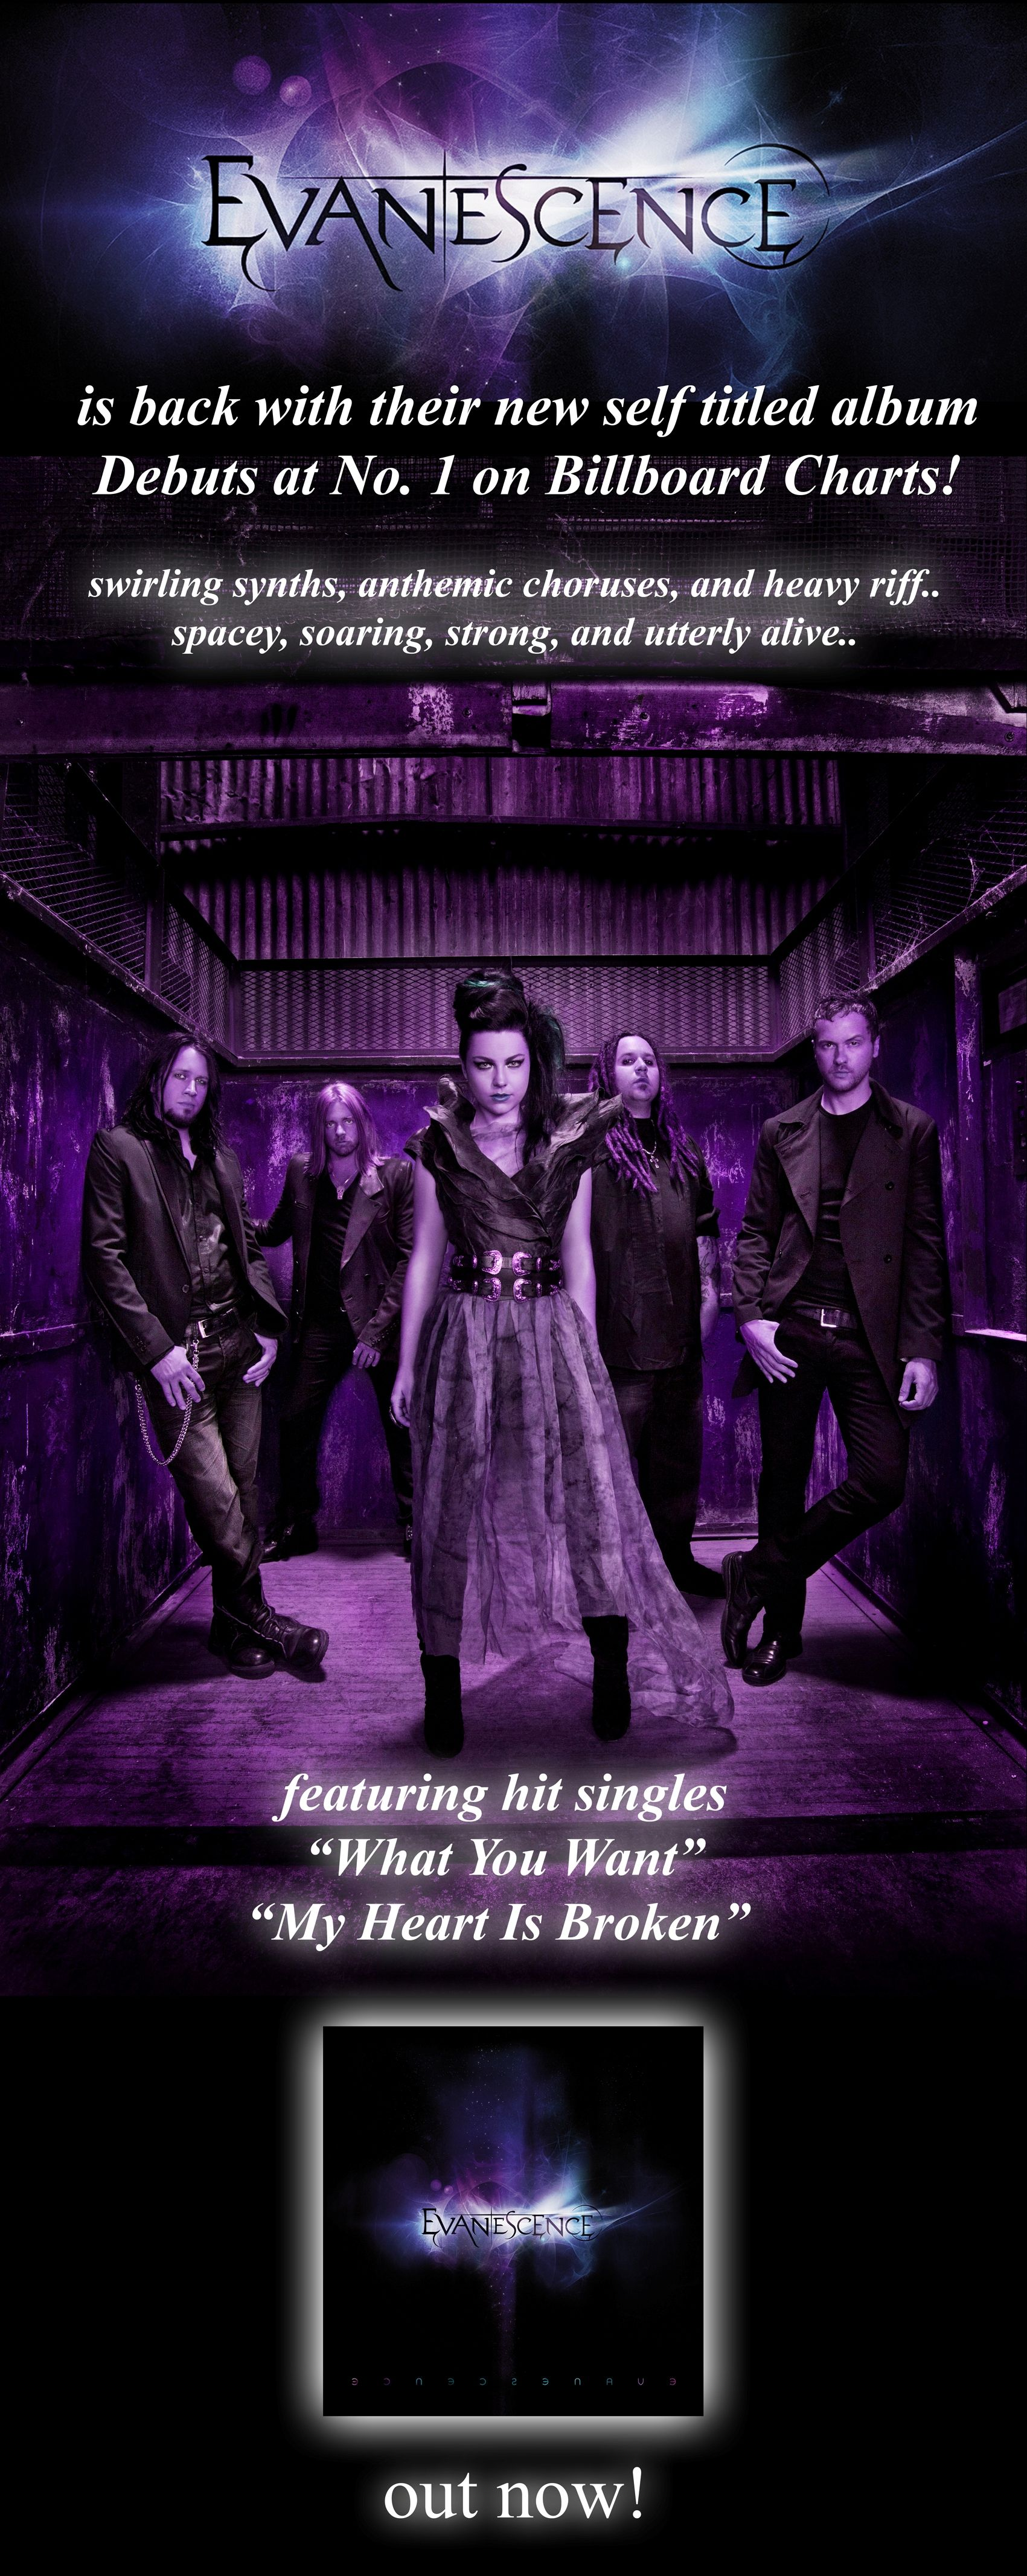 Evanescence Concert Poster